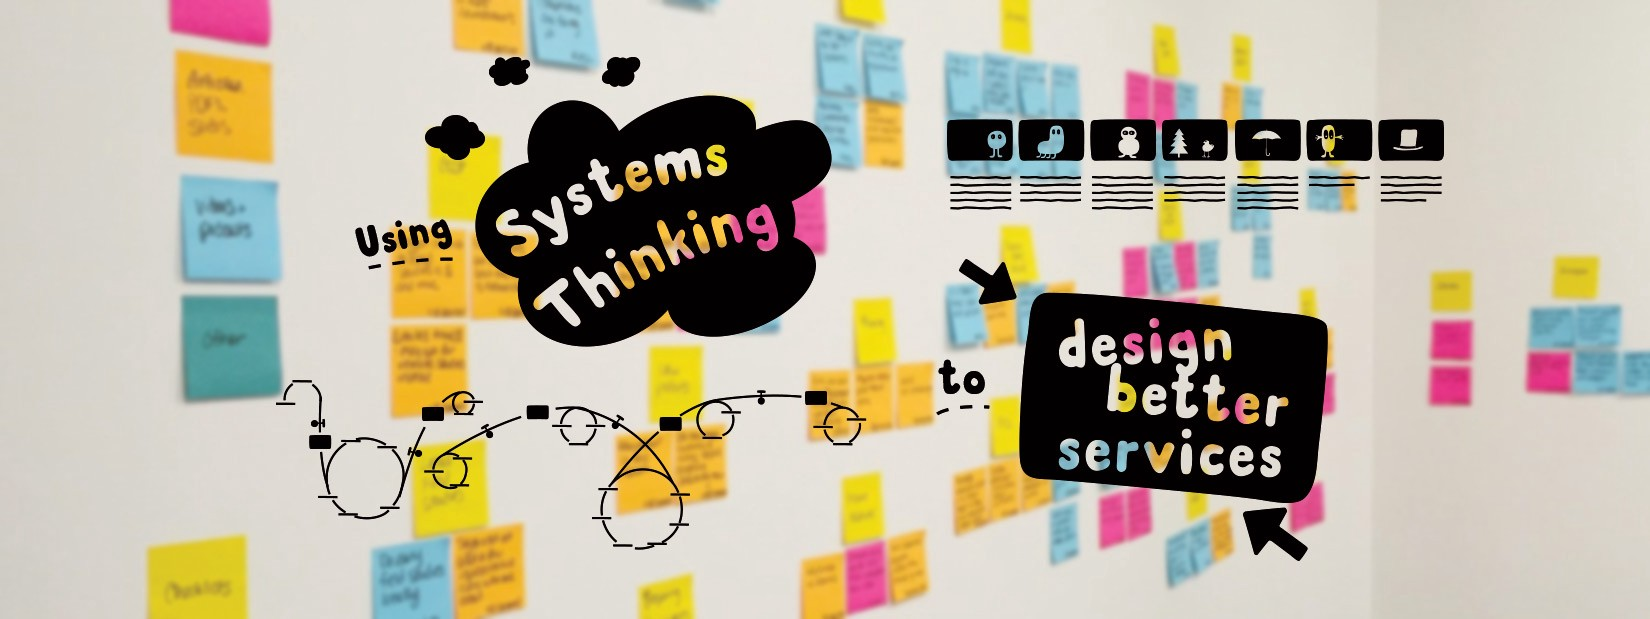 Using systems thinking to design better services mike laurie when creating new services for clients we very often dont delve deep enough into the organisation that delivers the service service solutions are often malvernweather Image collections